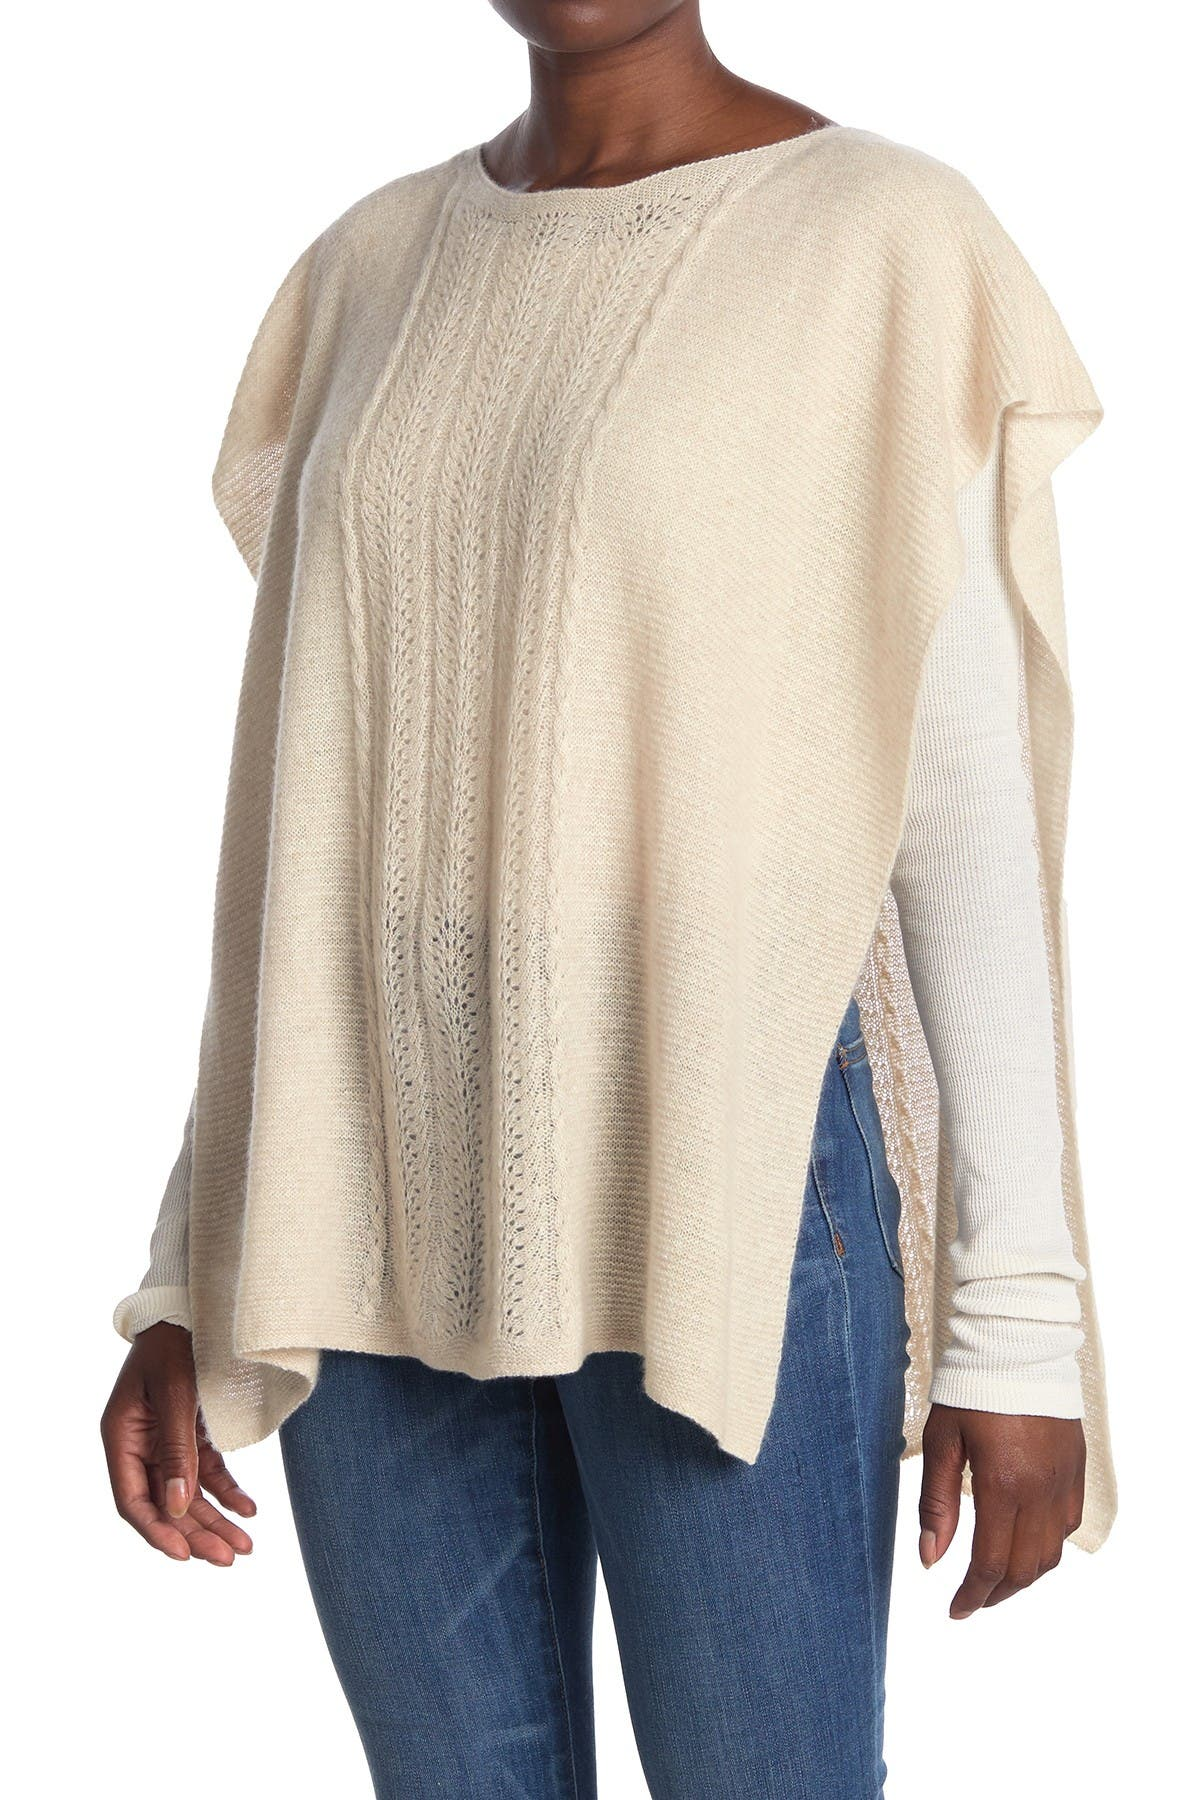 Image of Johnny Was Thea Cable Knit Cashmere Blend Poncho